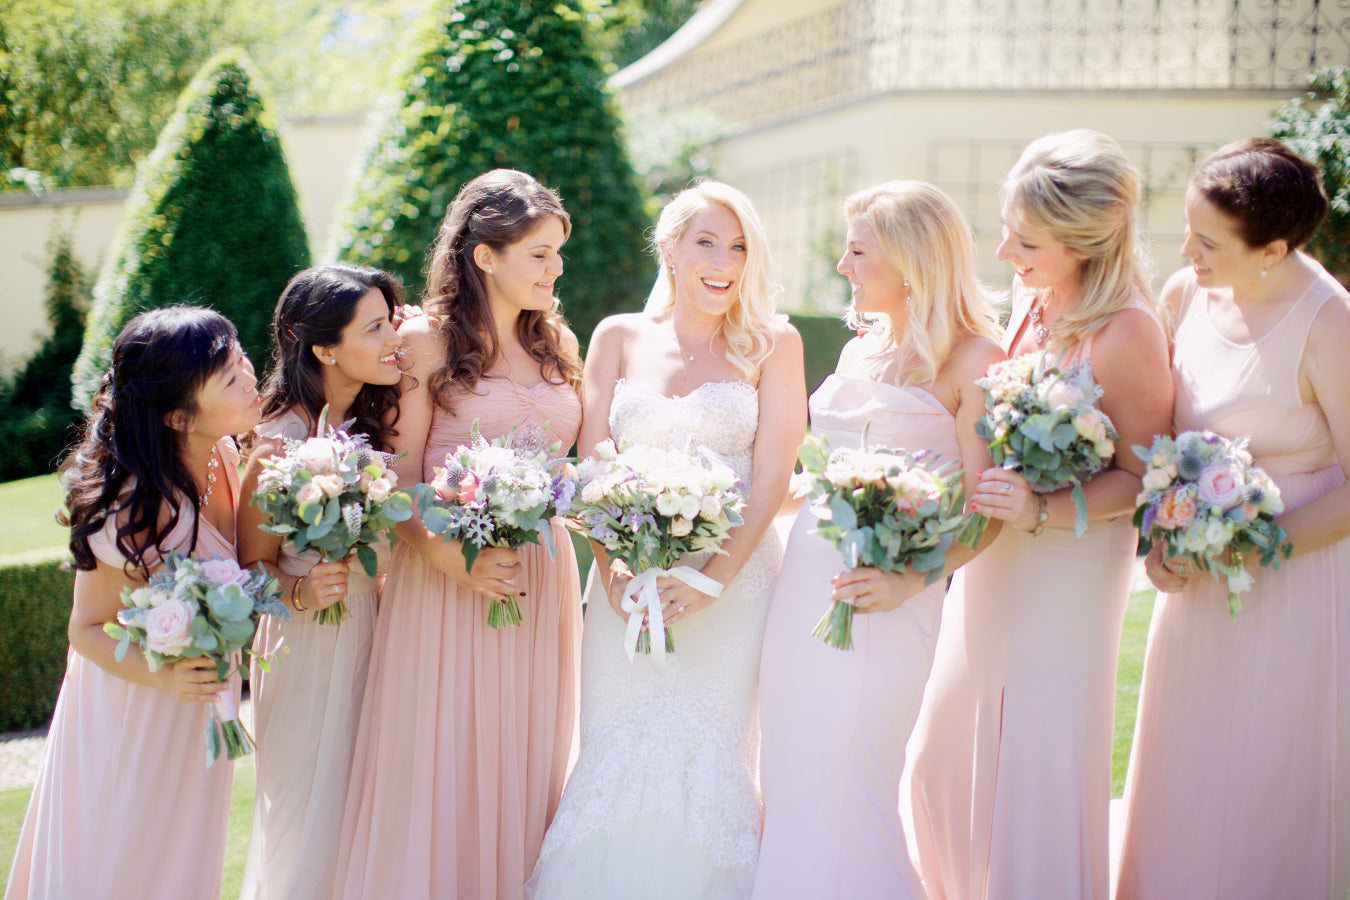 Bride and Bridesmaids in Blush | Summer Wedding in Prague | Photography: Stepan Vrzala